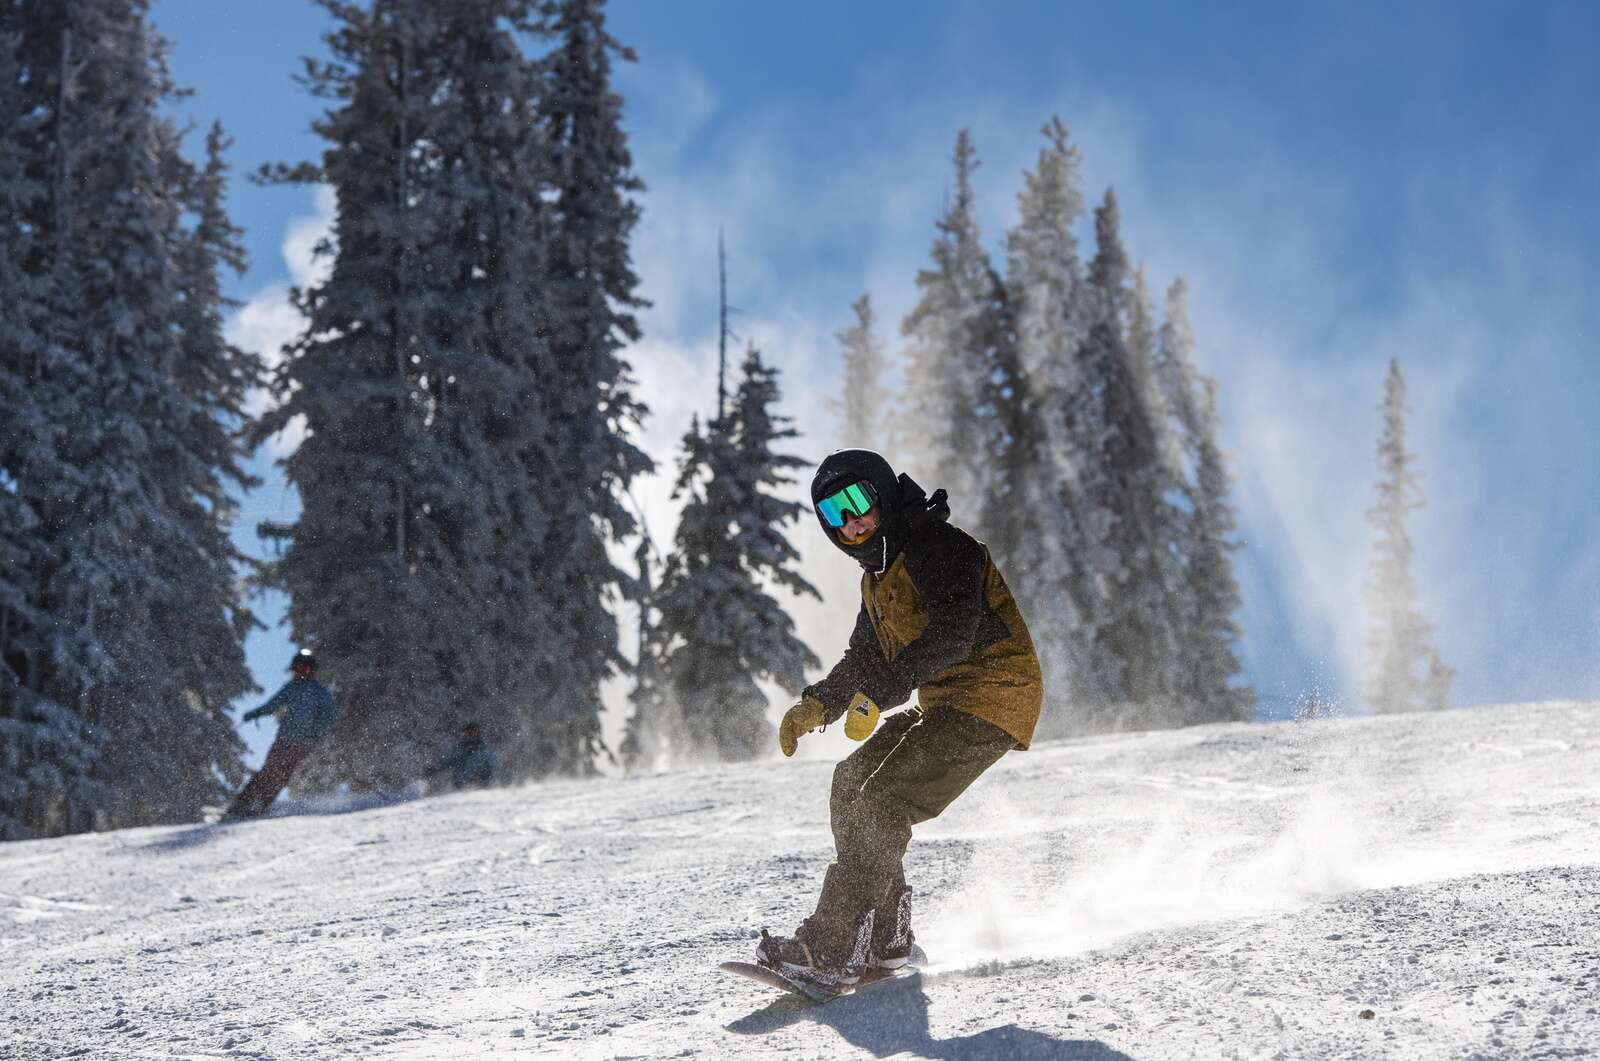 A snowboarder carves on opening day on Aspen Mountain on Wednesday, Nov. 25, 2020. (Kelsey Brunner/The Aspen Times)